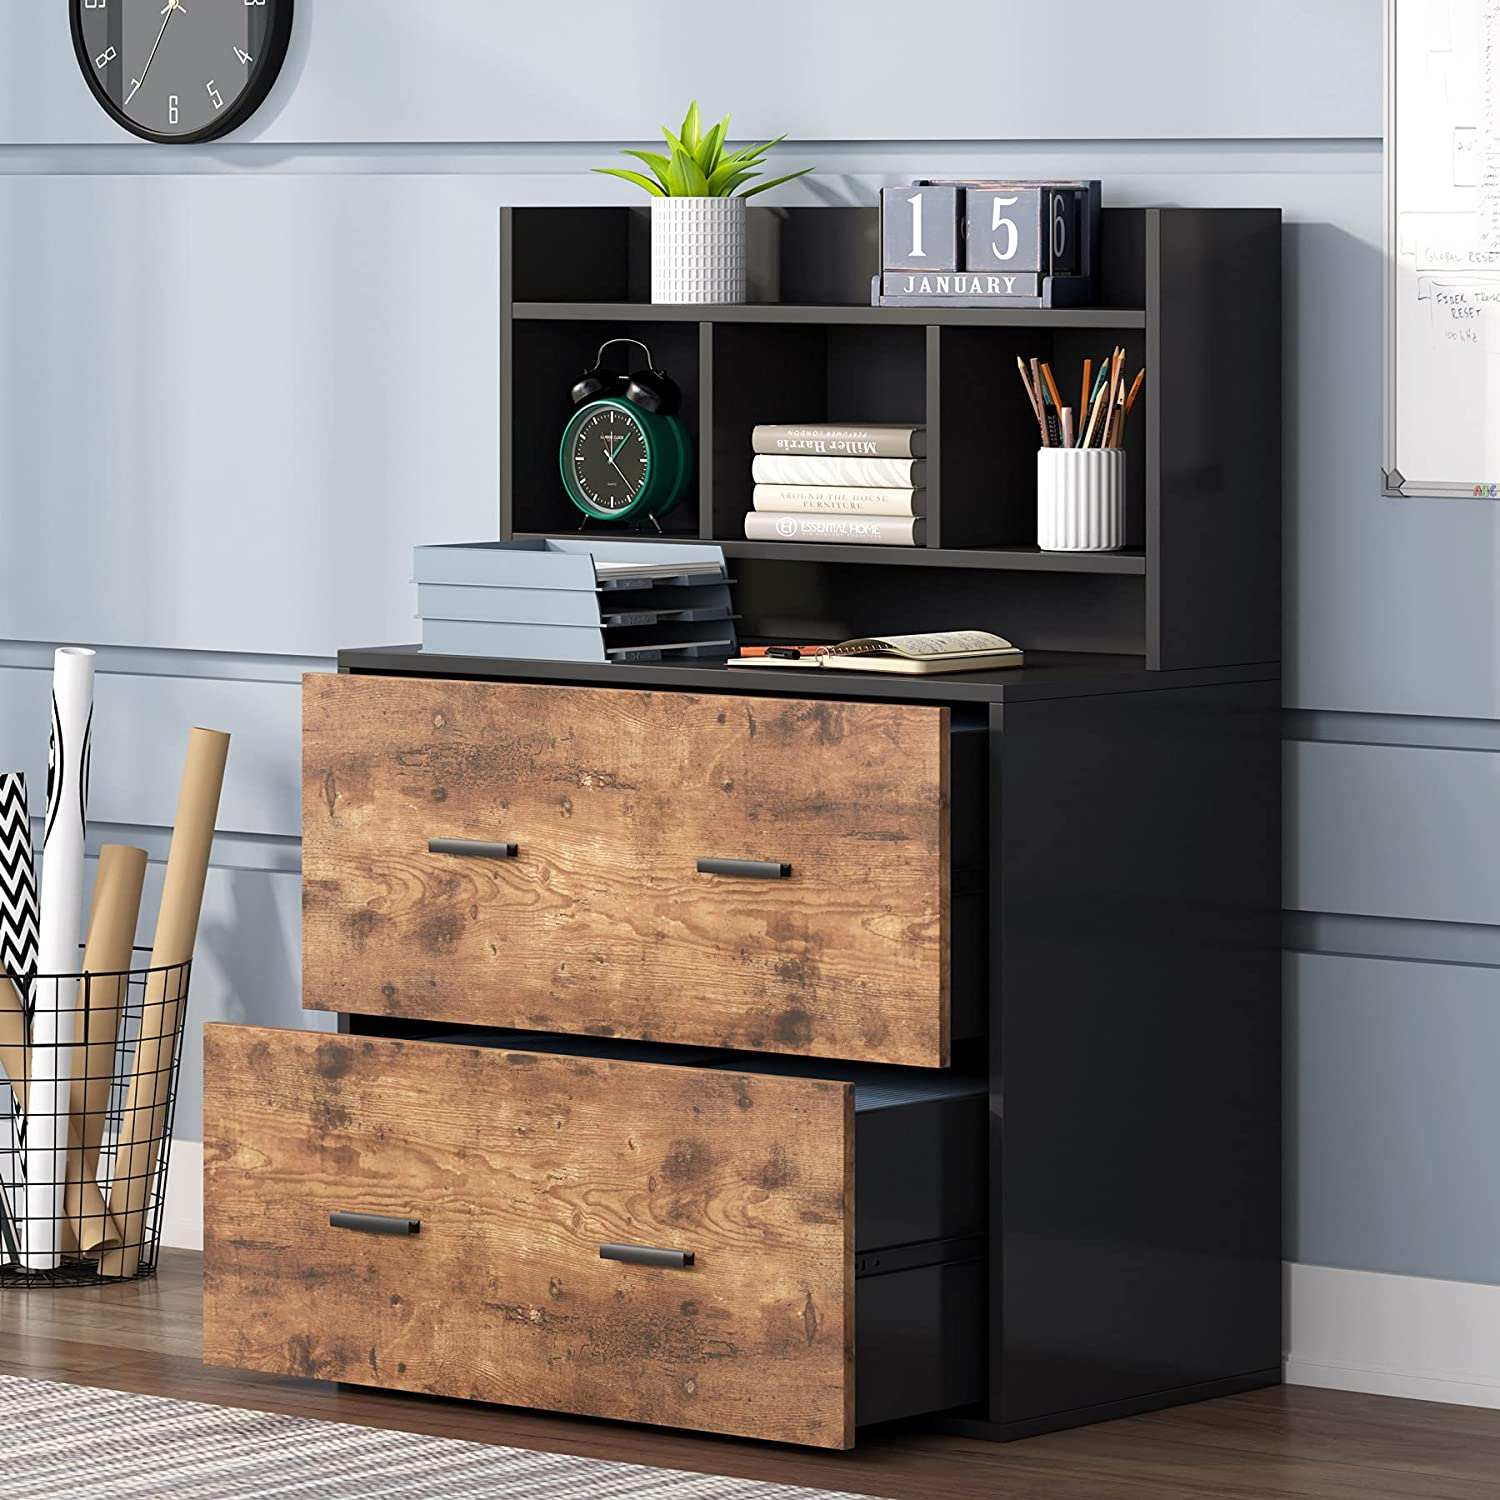 Tribesigns Large 2 Drawers File Cabinet, Wood Lateral Filing Cabinet with Storage Shelf, Modern Large Office Storage Cabinet for Letter Size or Hanging File Folders, Home office Cabinet,Black & Rustic